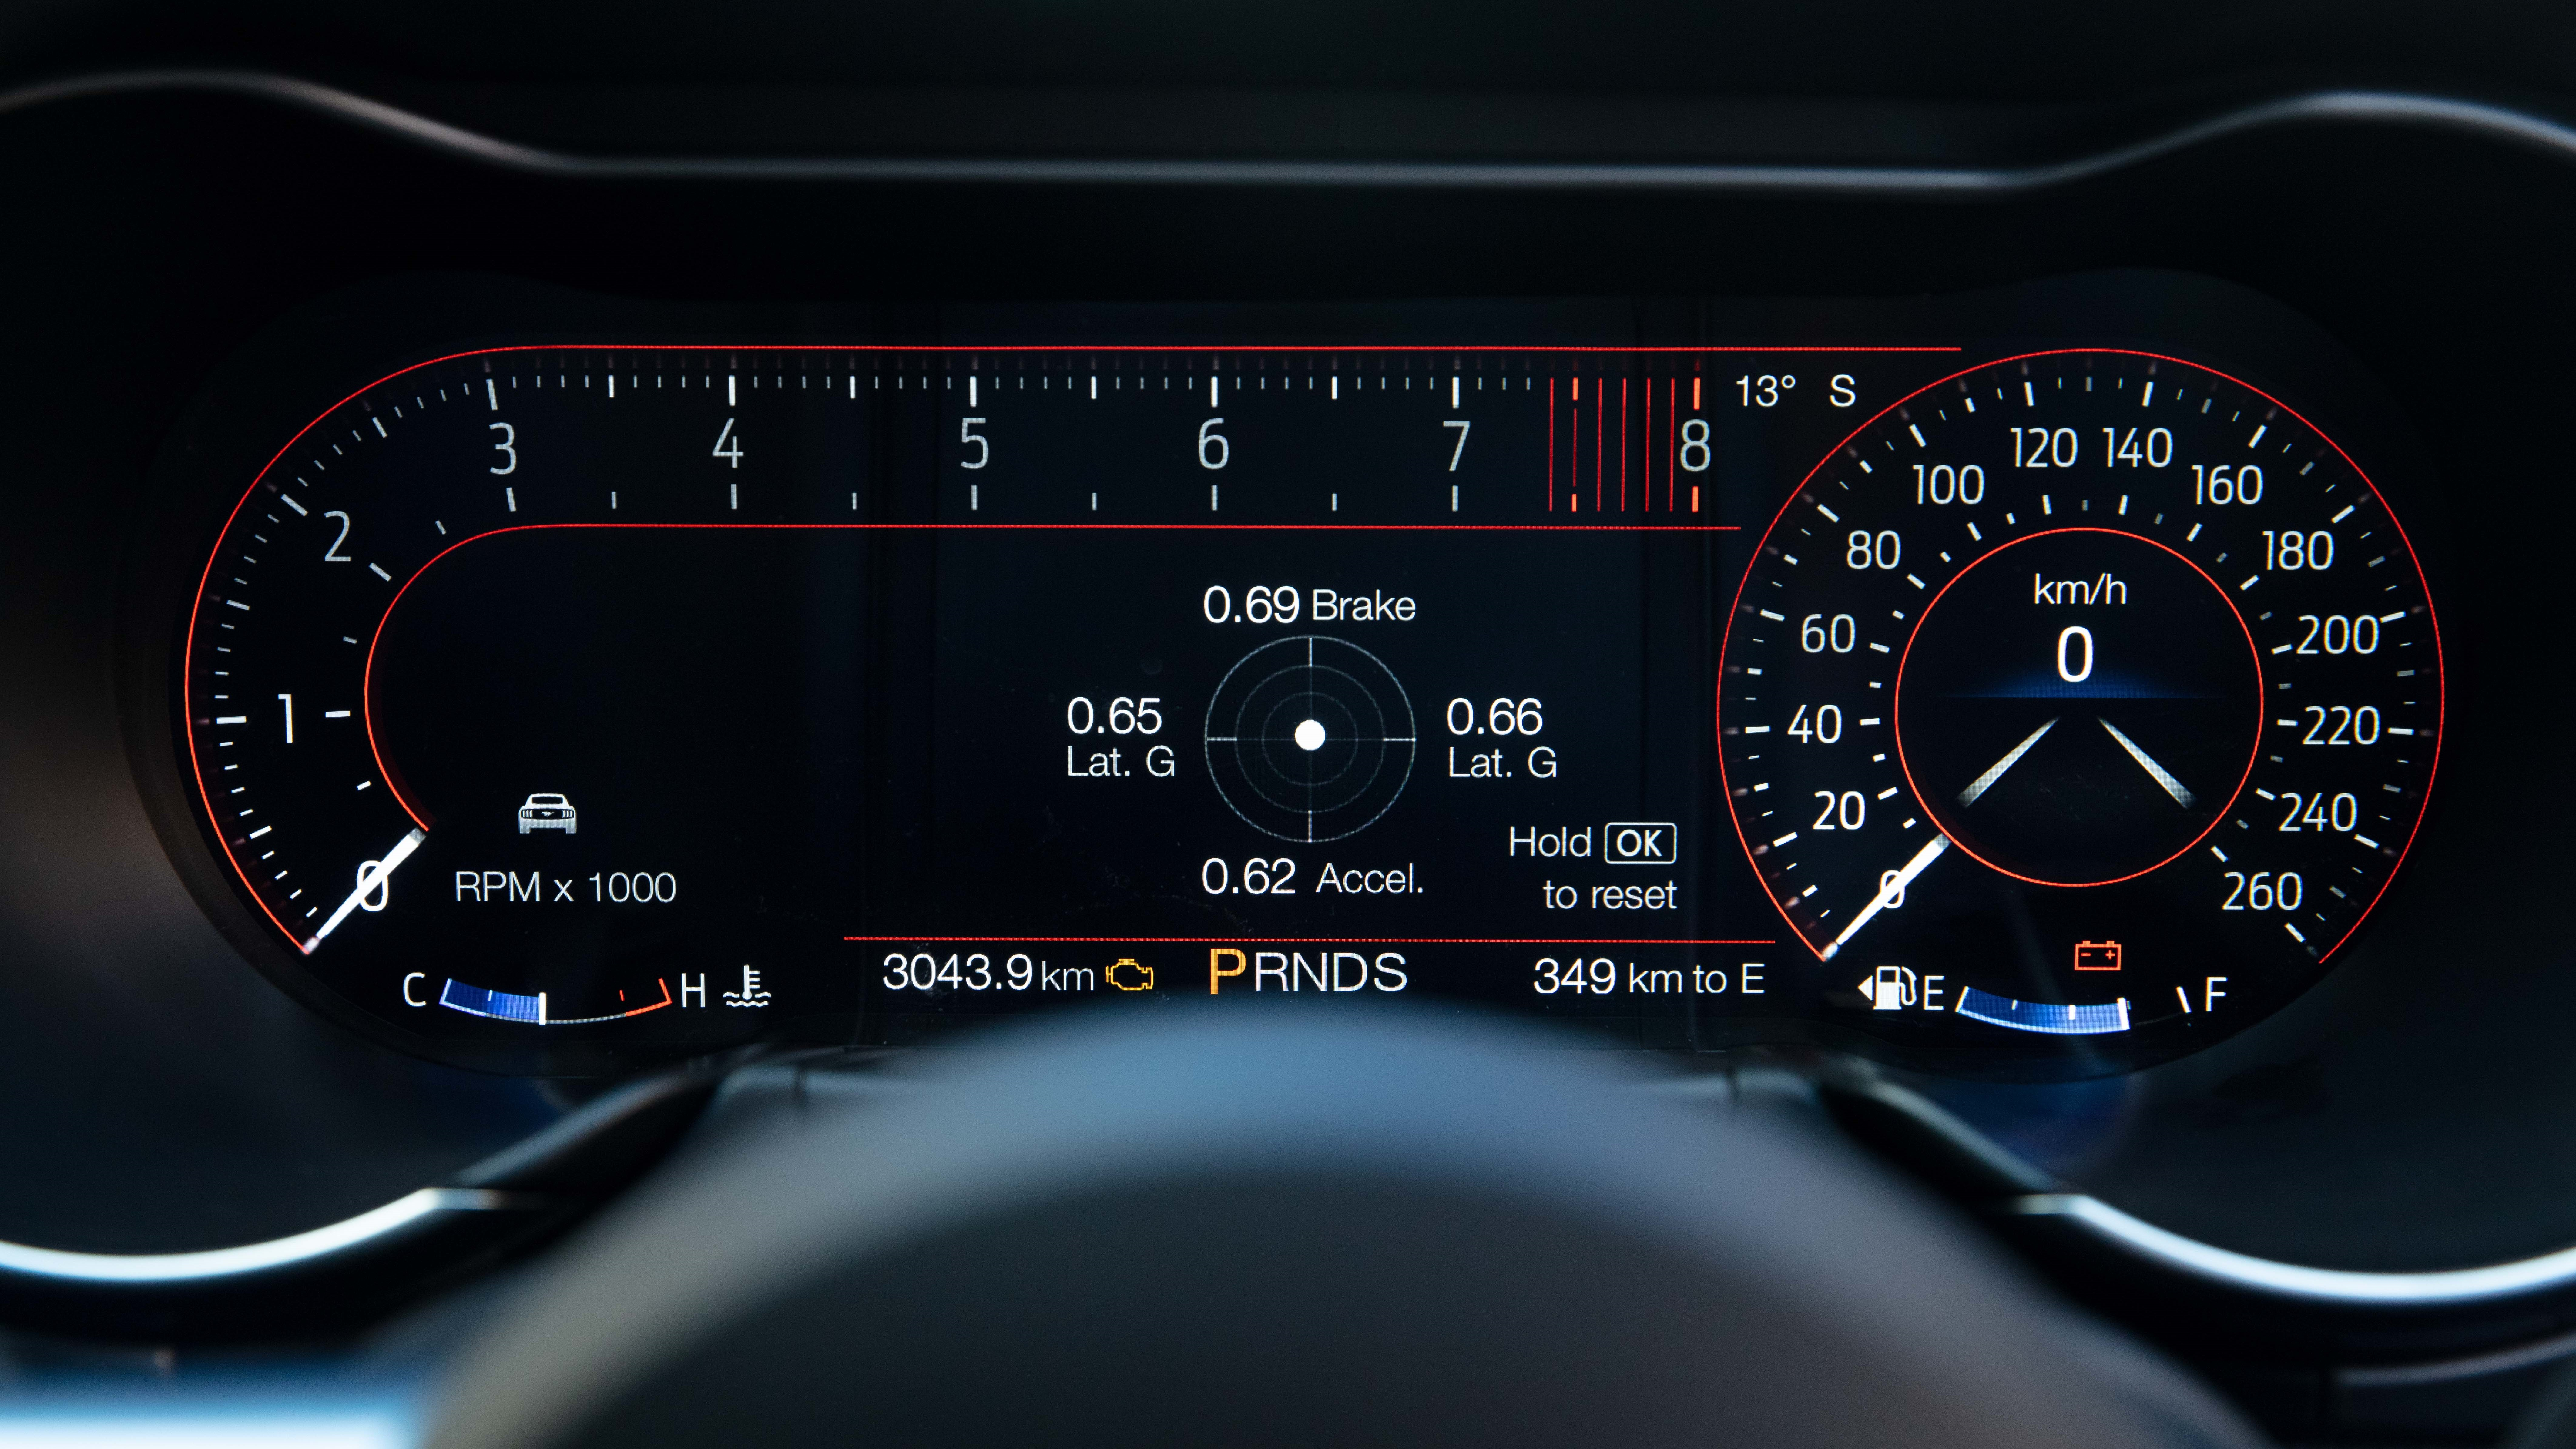 2018 Ford Mustang digital dashboard - Sport layout.